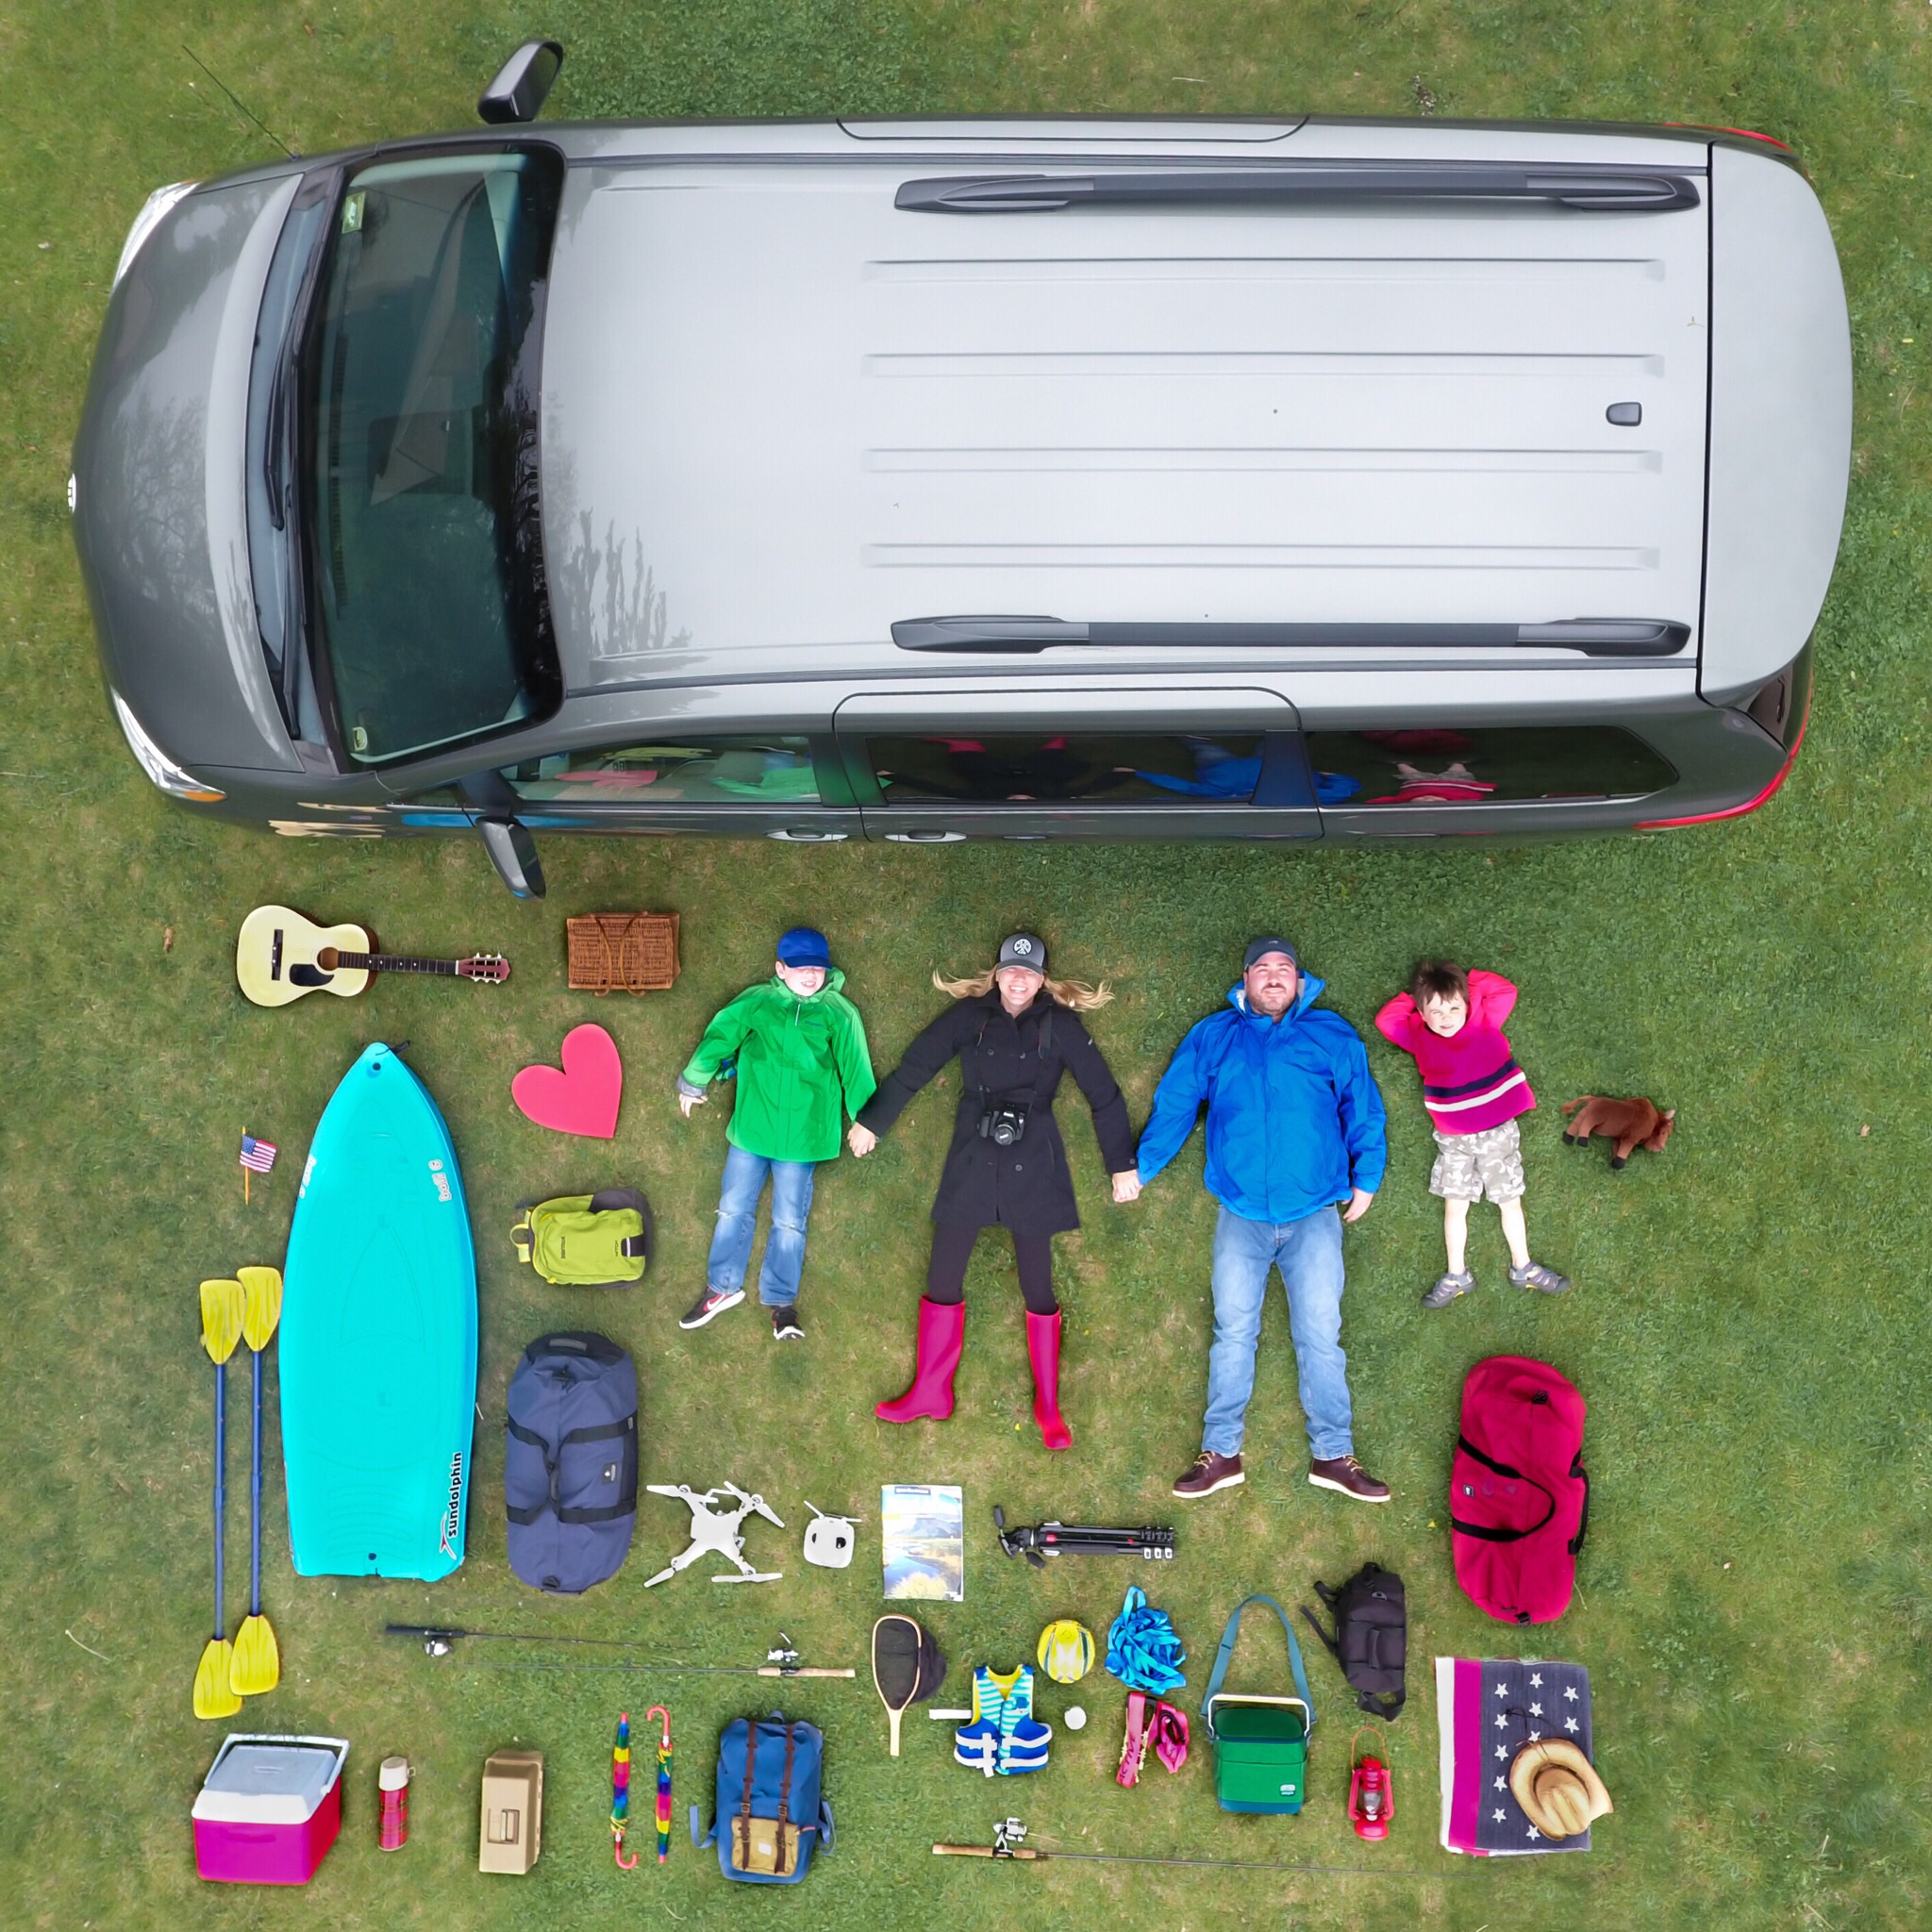 Special thanks to @maverickdrones for helping me with this life-sized #thingsorganizedneatly shot!